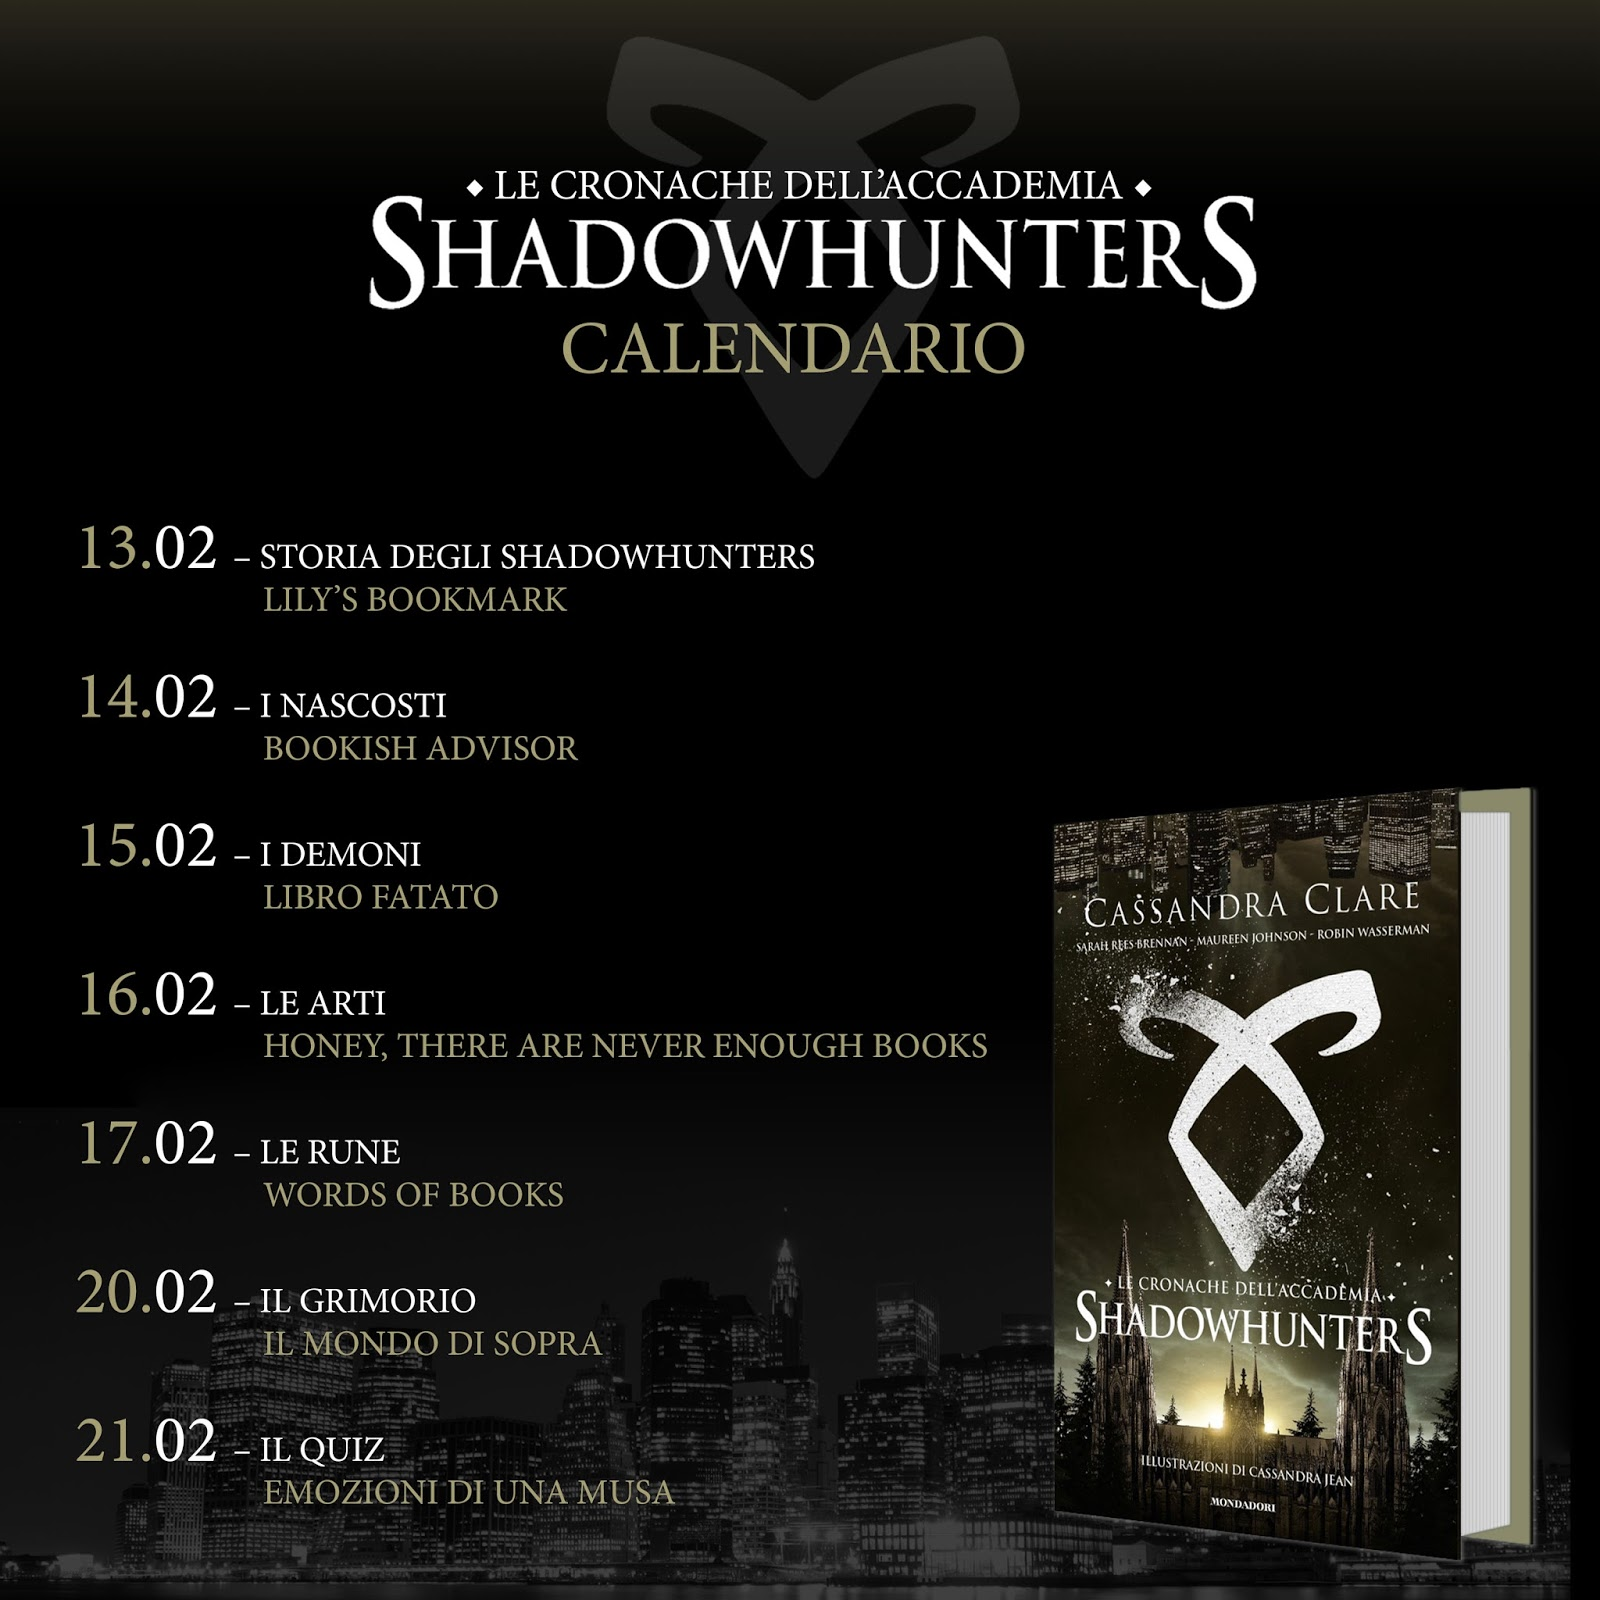 Shadowhunters Libros Honey There Are Never Enough Books Le Arti Blogtour